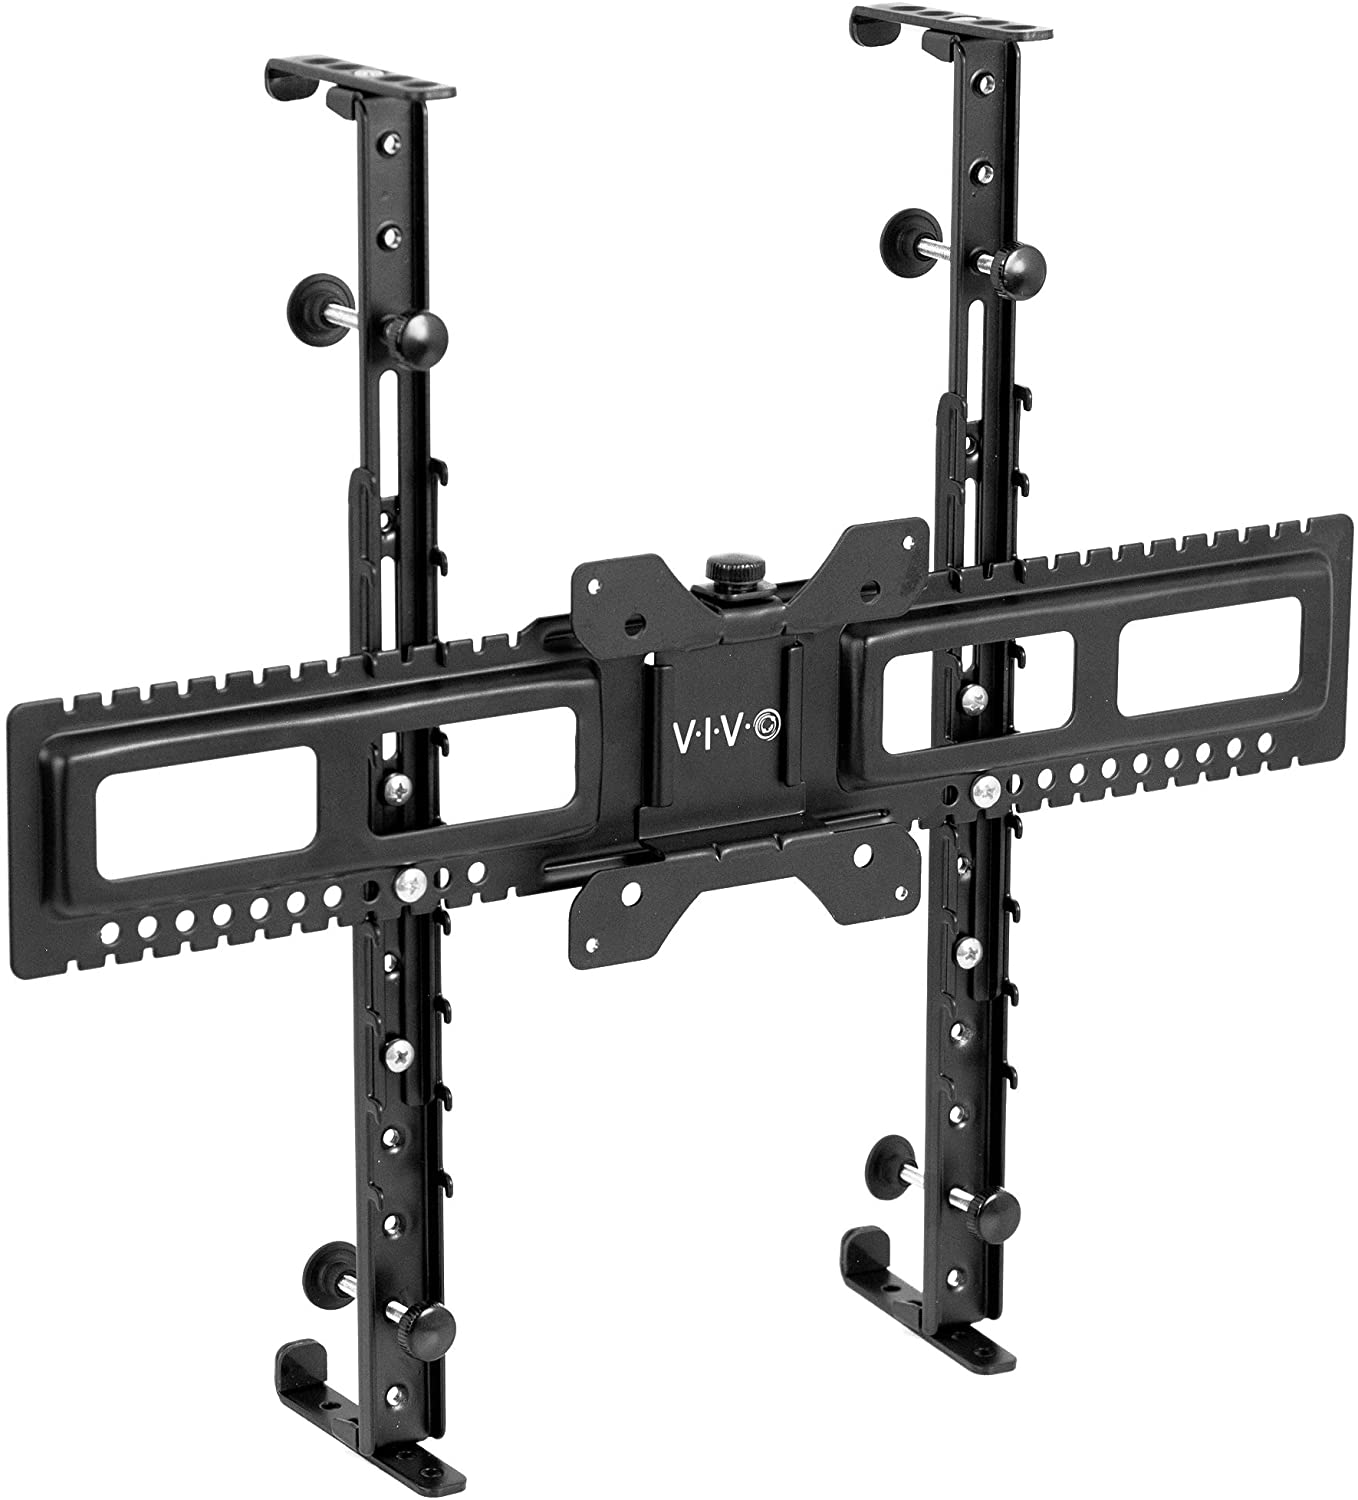 VIVO Universal Adapter VESA Mount Kit for 20 to 32 inch Flat and Curved Monitor Screens, 100x100mm Mounting Bracket (MOUNT-UVM01)